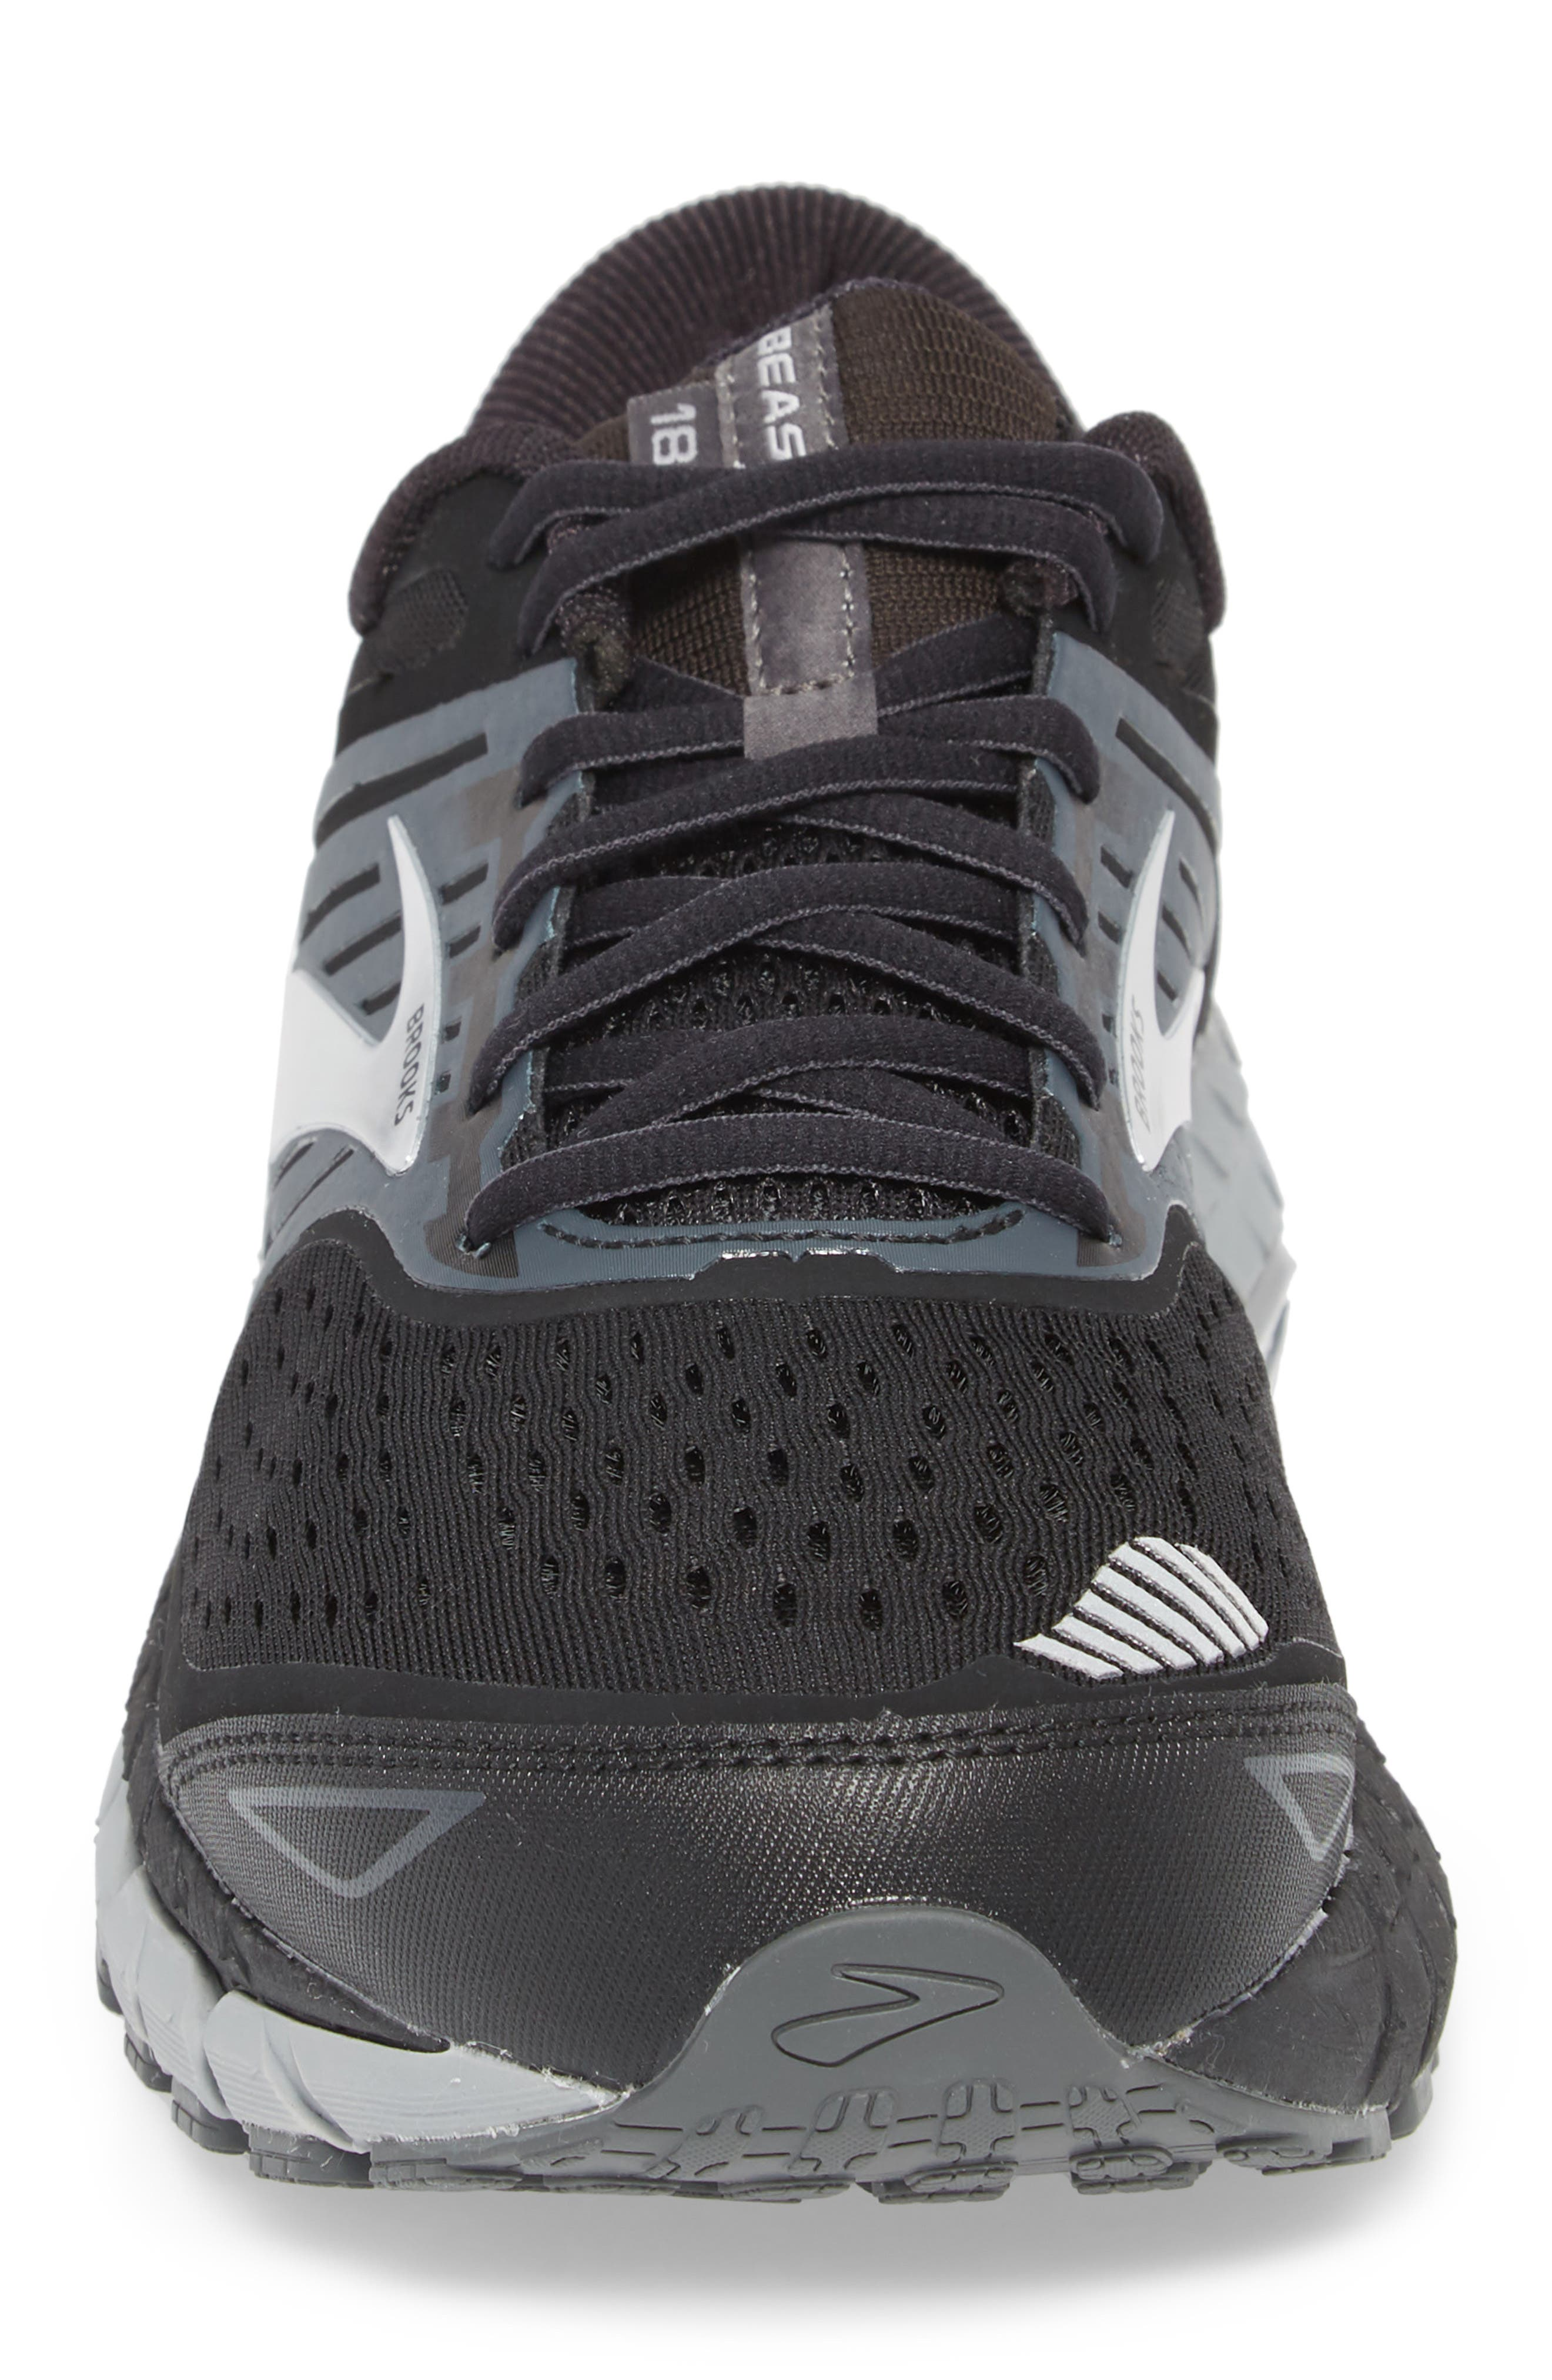 Beast '18 Running Shoe,                             Alternate thumbnail 4, color,                             BLACK/ GREY/ SILVER